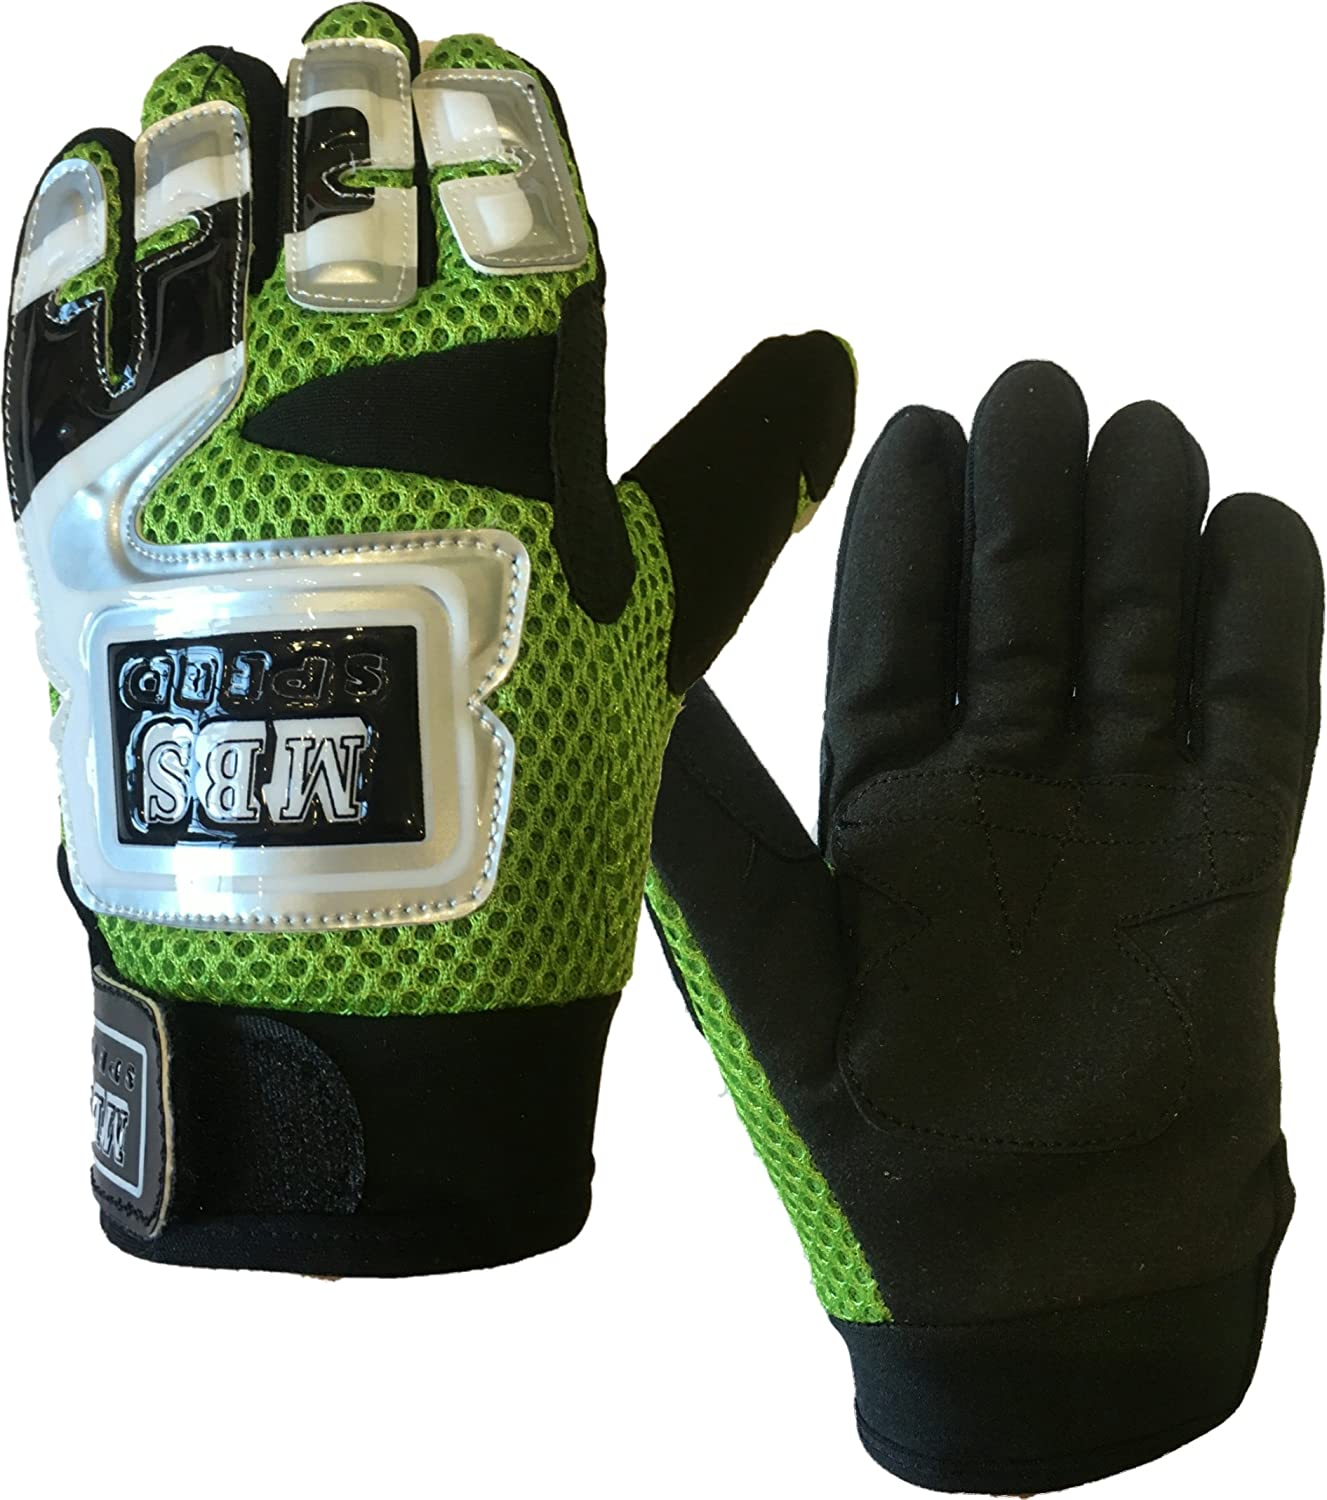 Kids Junior Cub Youth Children Motocross Motorcycle BMX Enduro Off Road Textile Gloves MBS GTC15